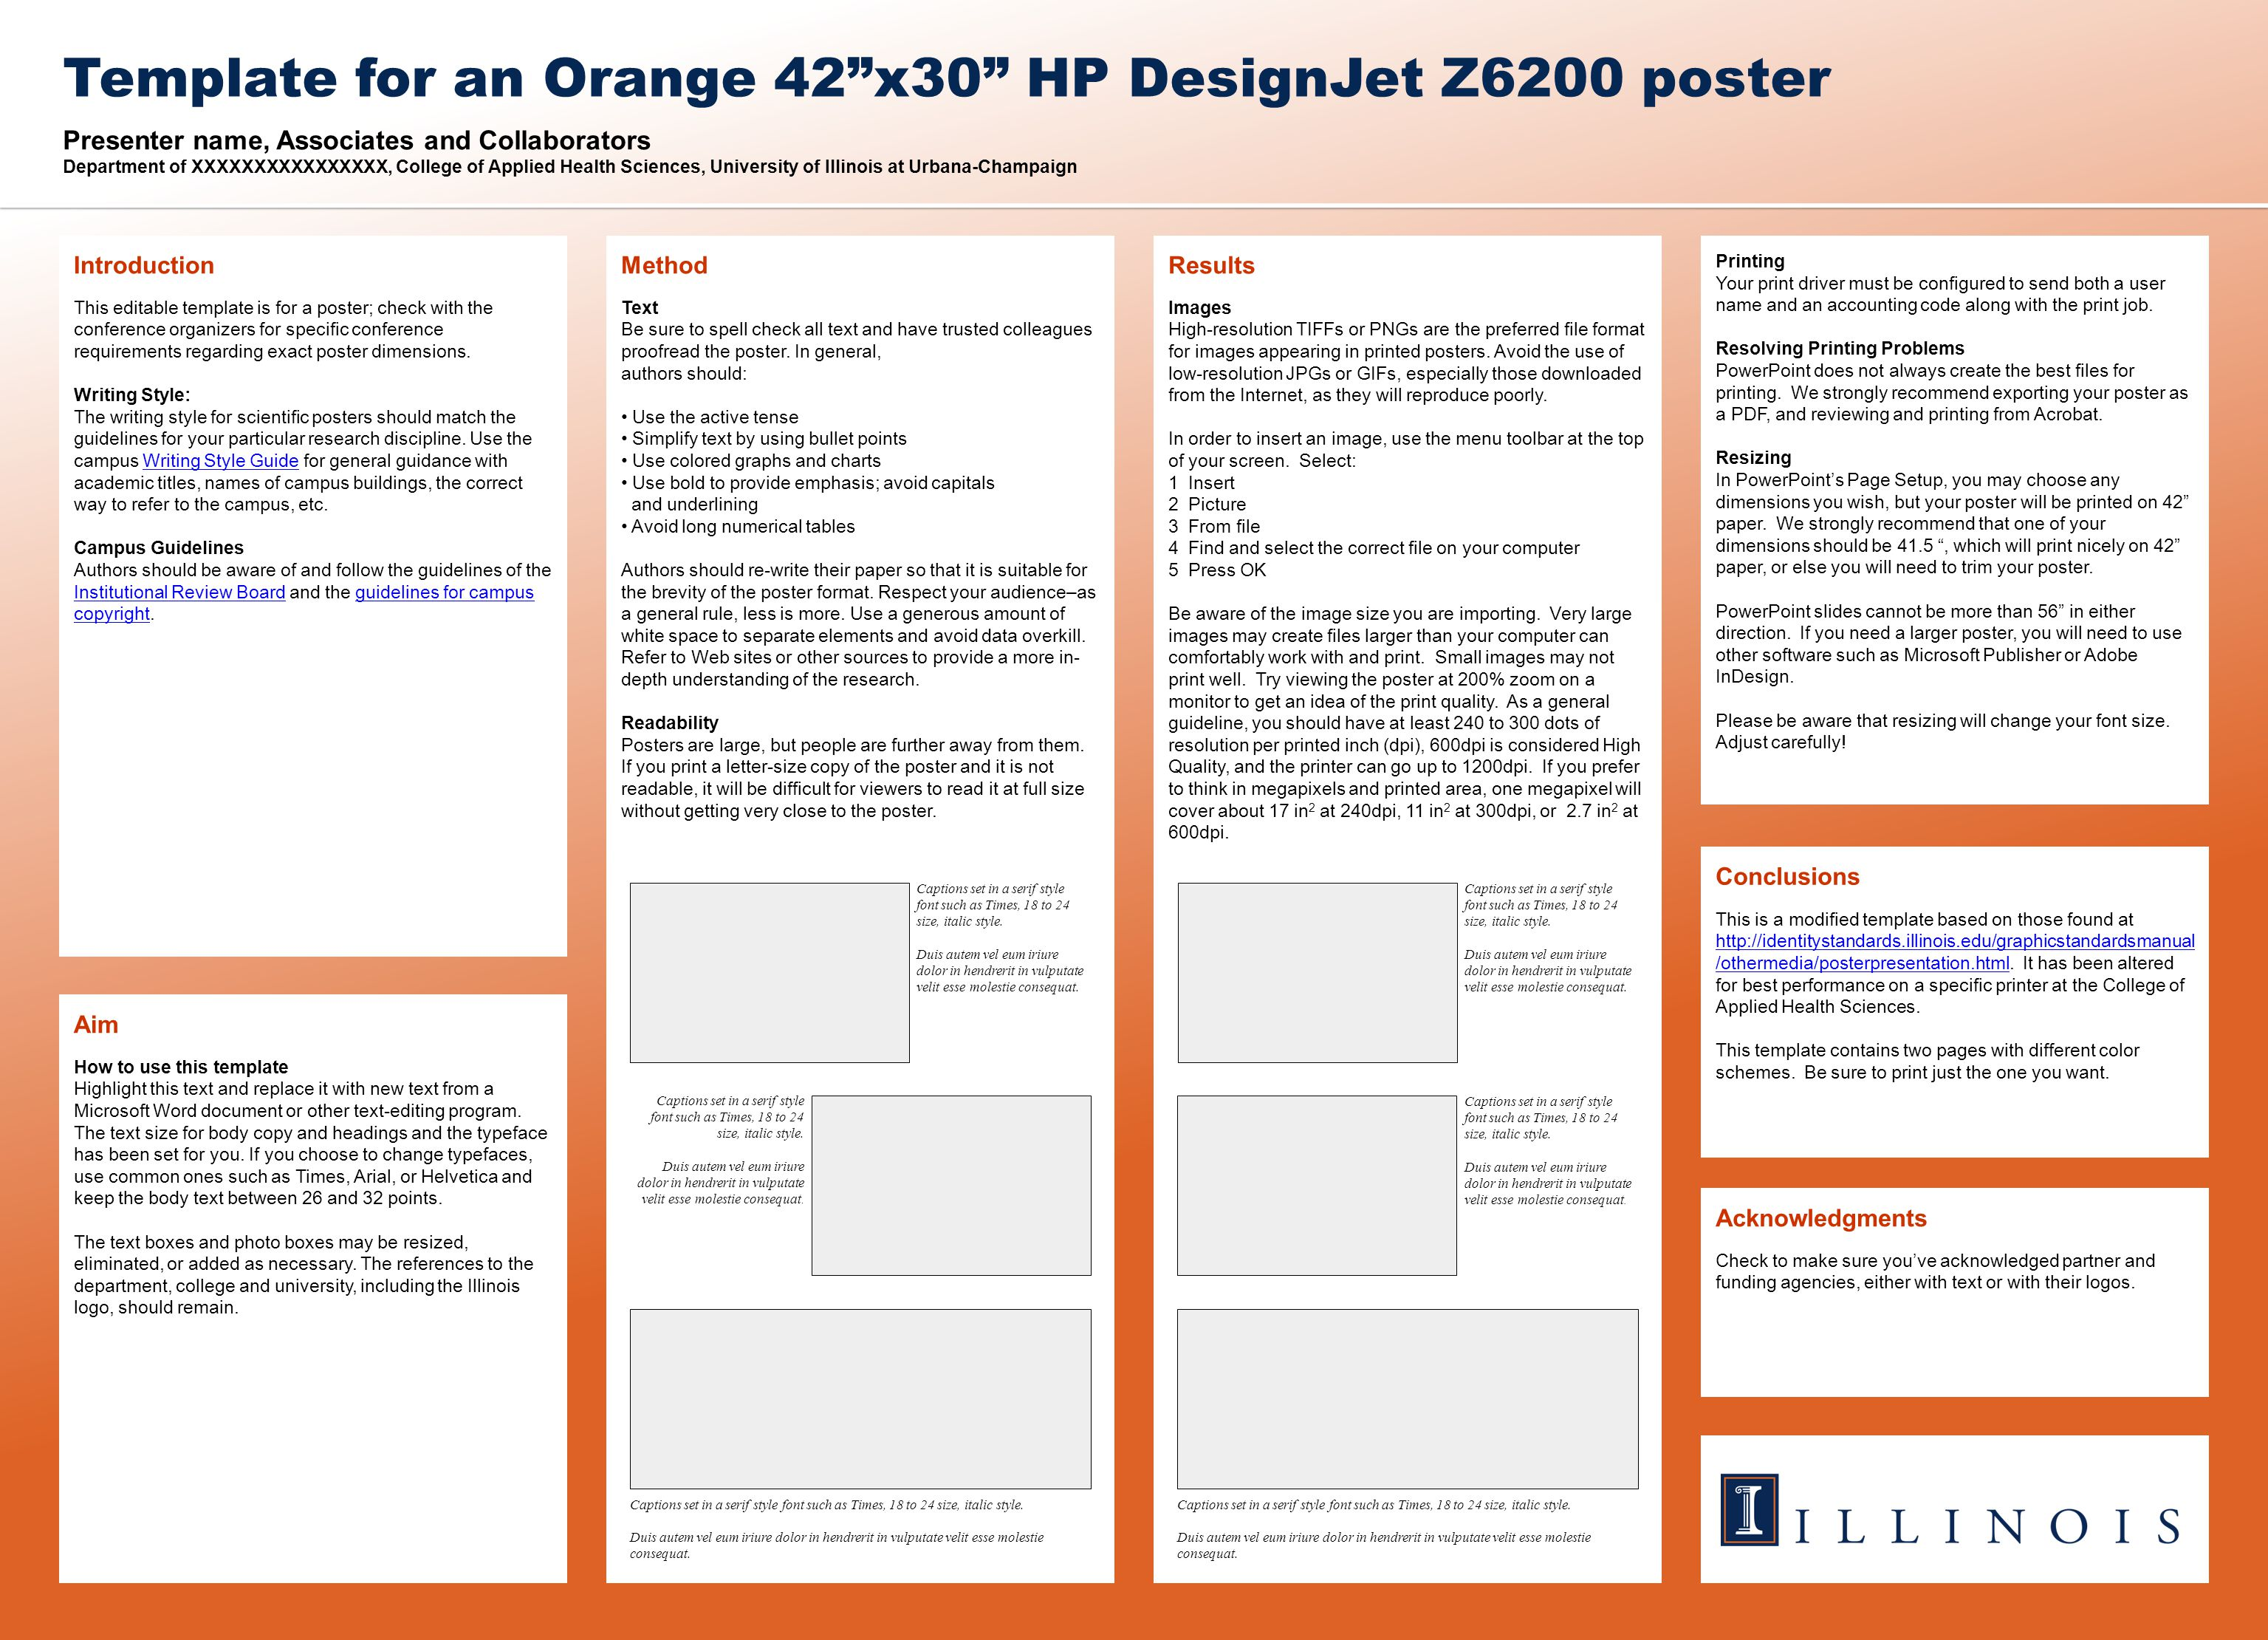 Presenter name, Associates and Collaborators Department of XXXXXXXXXXXXXXXX, College of Applied Health Sciences, University of Illinois at Urbana-Champaign Template for an Orange 42 x30 HP DesignJet Z6200 poster Acknowledgments Check to make sure you've acknowledged partner and funding agencies, either with text or with their logos.